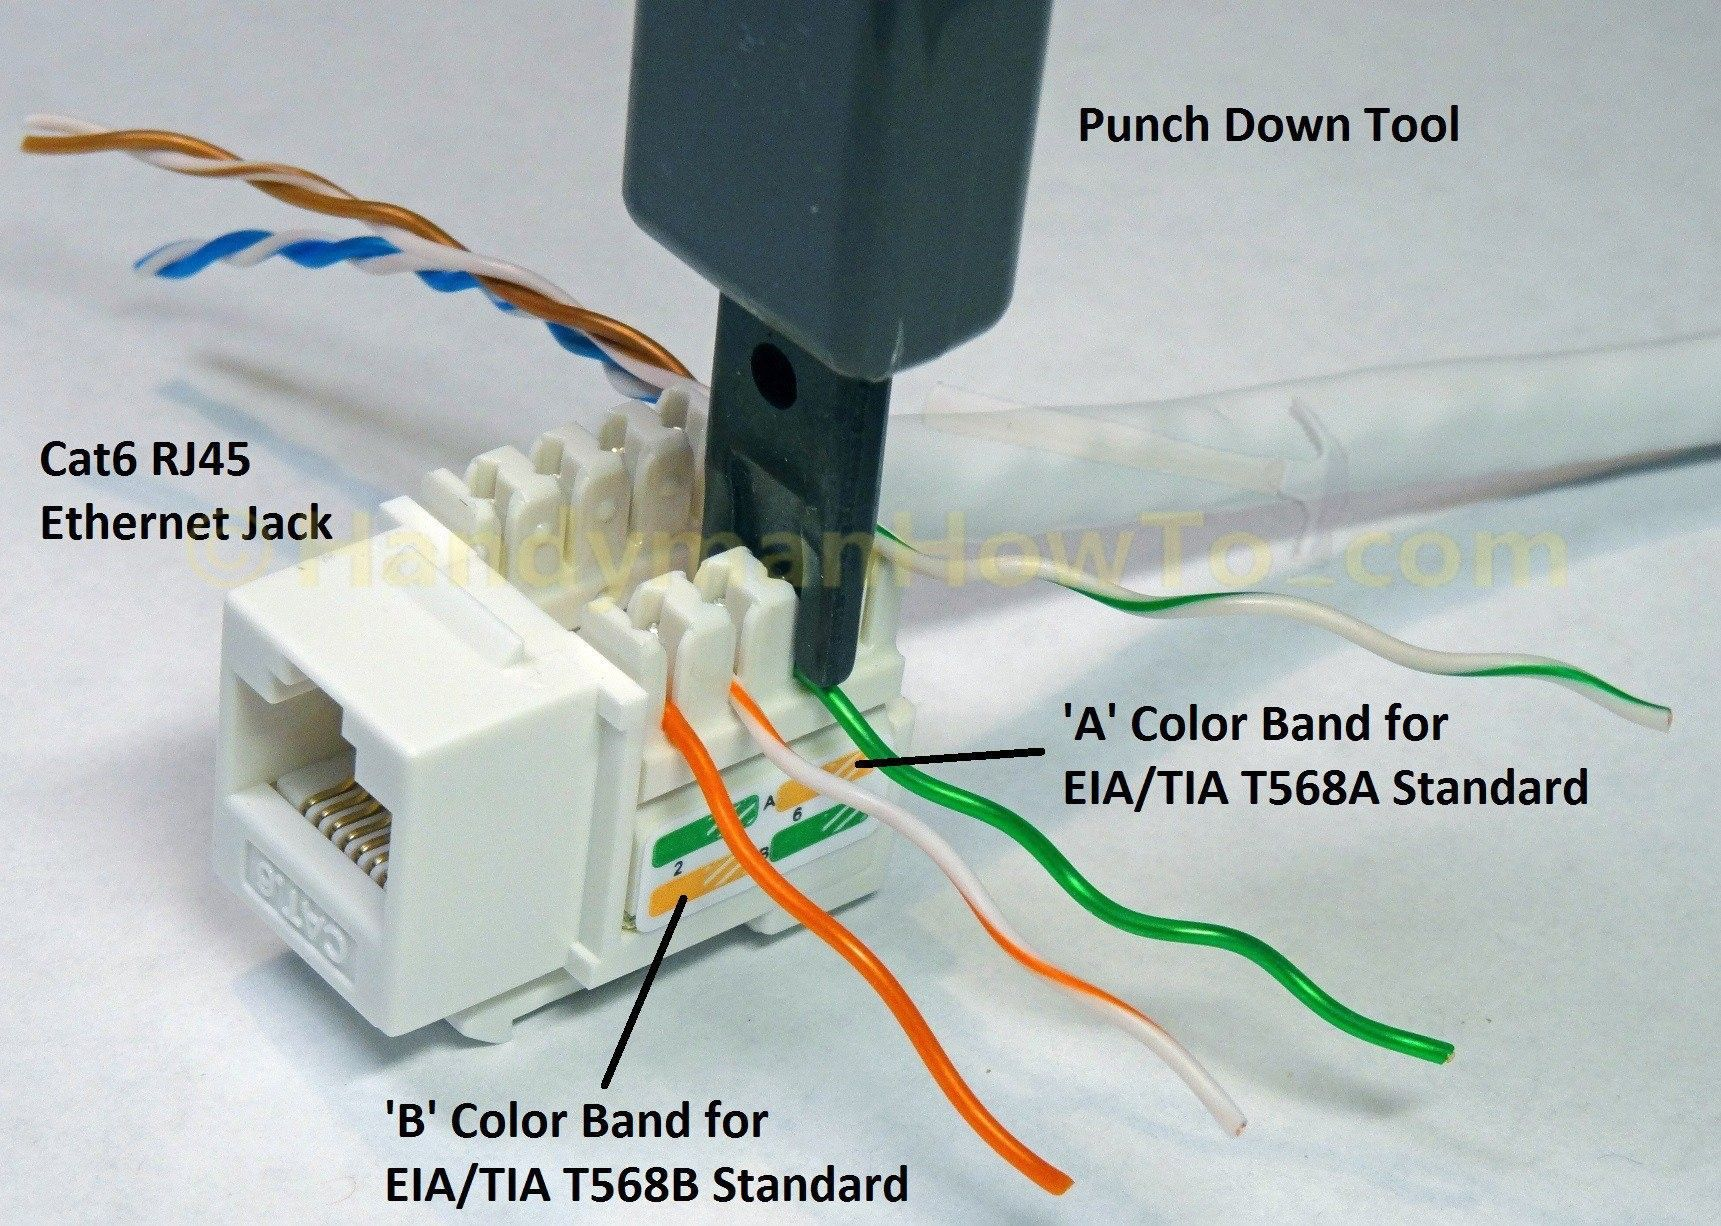 Cat 5 Phone Jack Wiring Diagram Installing | Rj45, Wall jack, Ceiling fan  switchPinterest